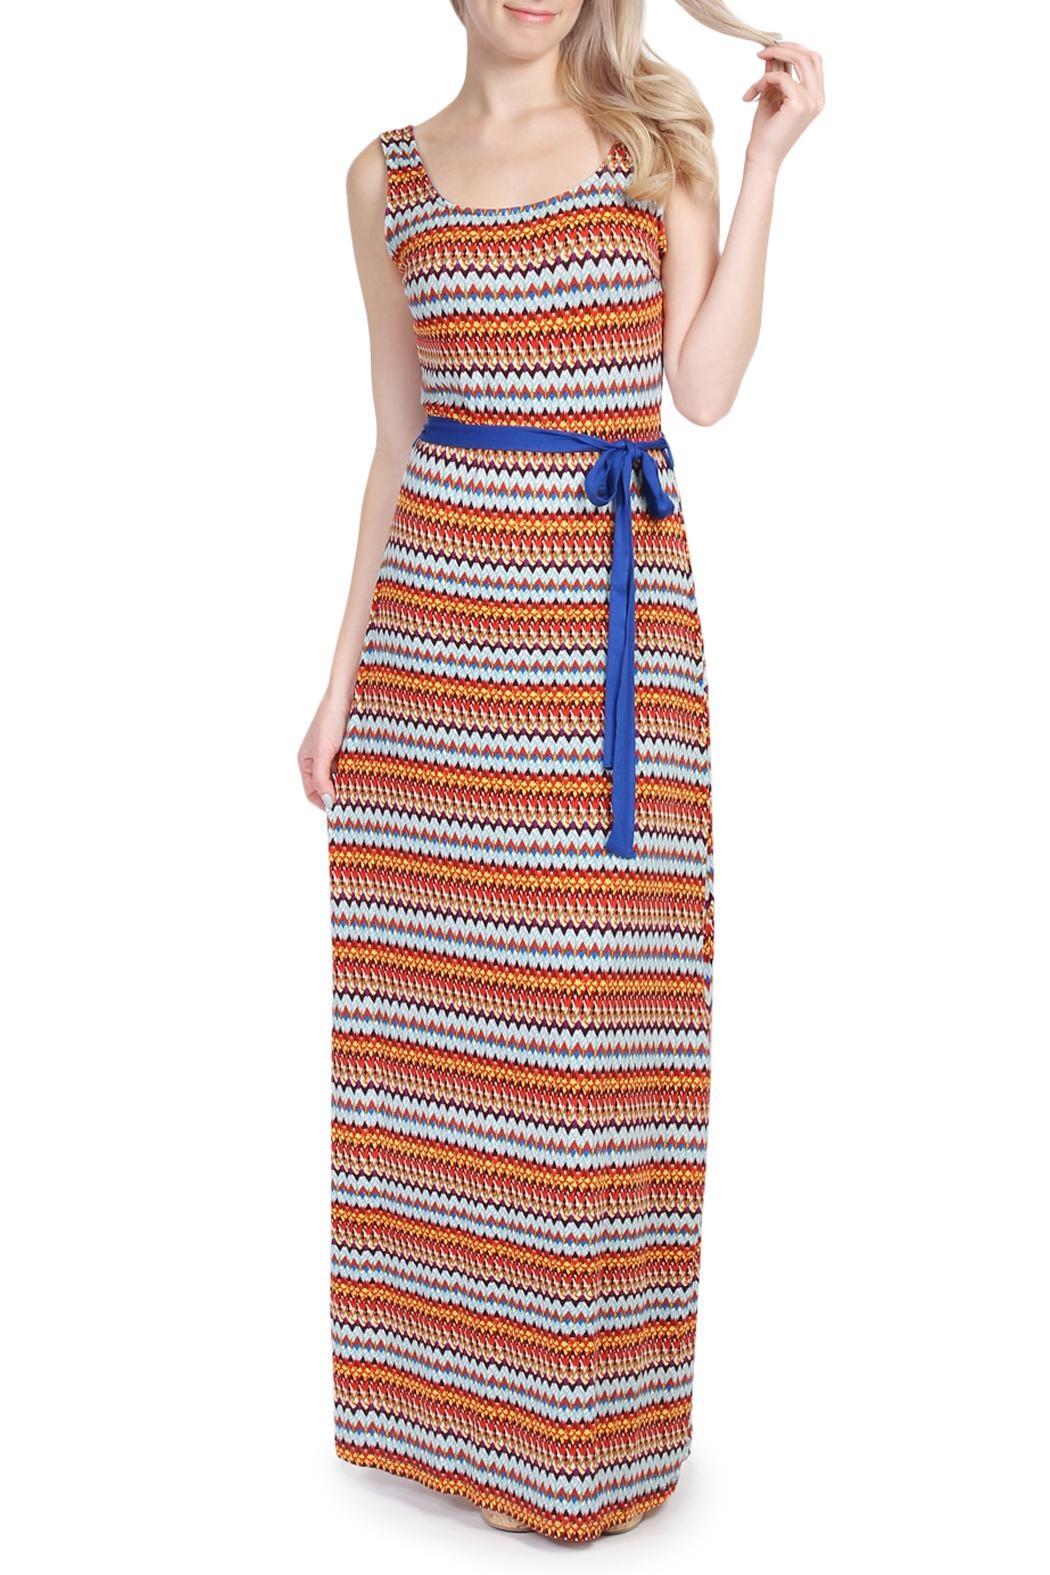 Riah Fashion Tribal Print Maxi Dress - Main Image